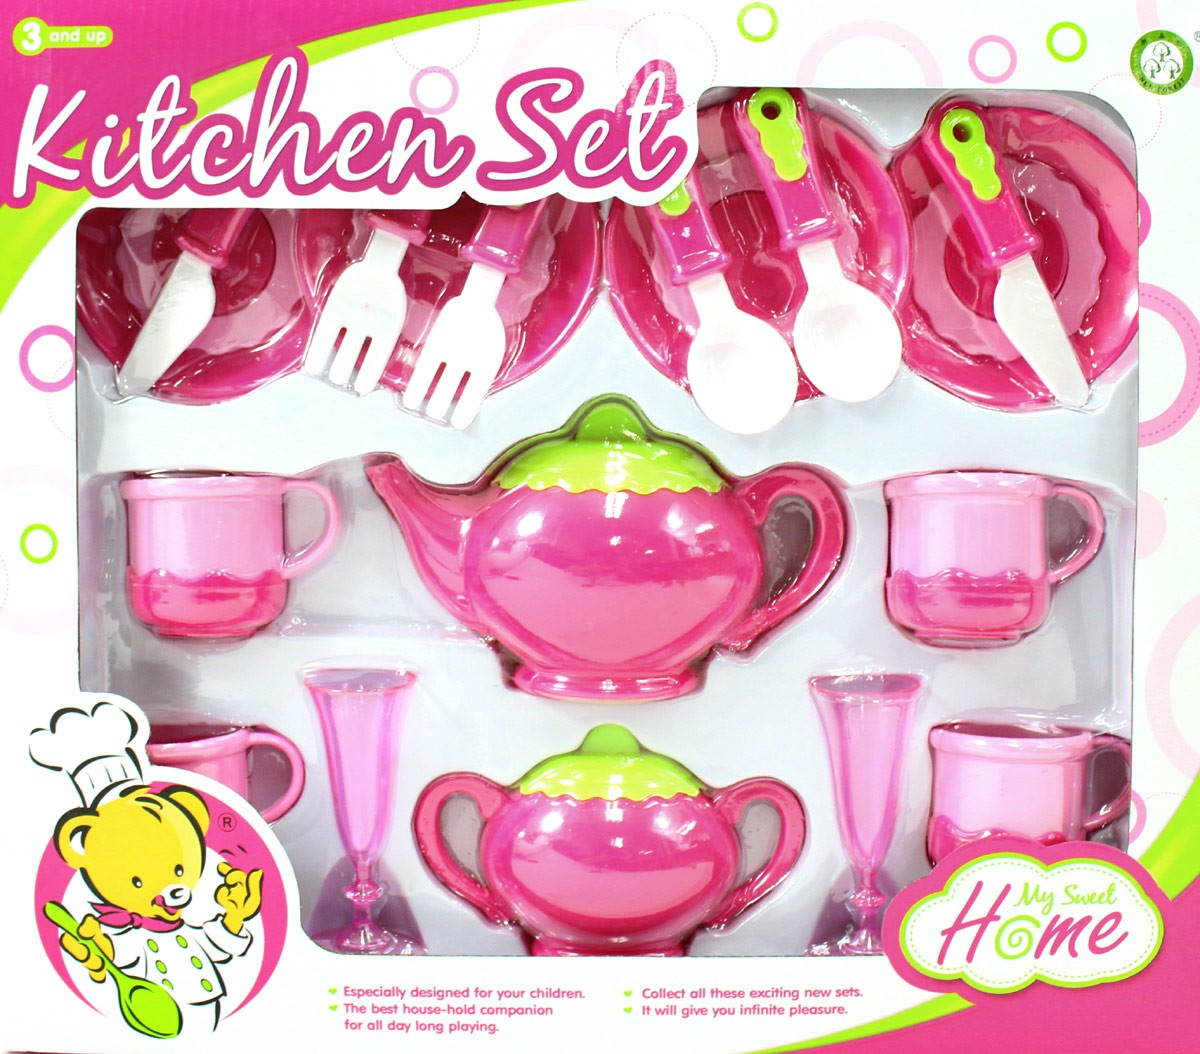 Deluxe Pink Tea Set For Kids With Tea Pots, Cups, Dishes And Kitchen Utensils (18 pcs)